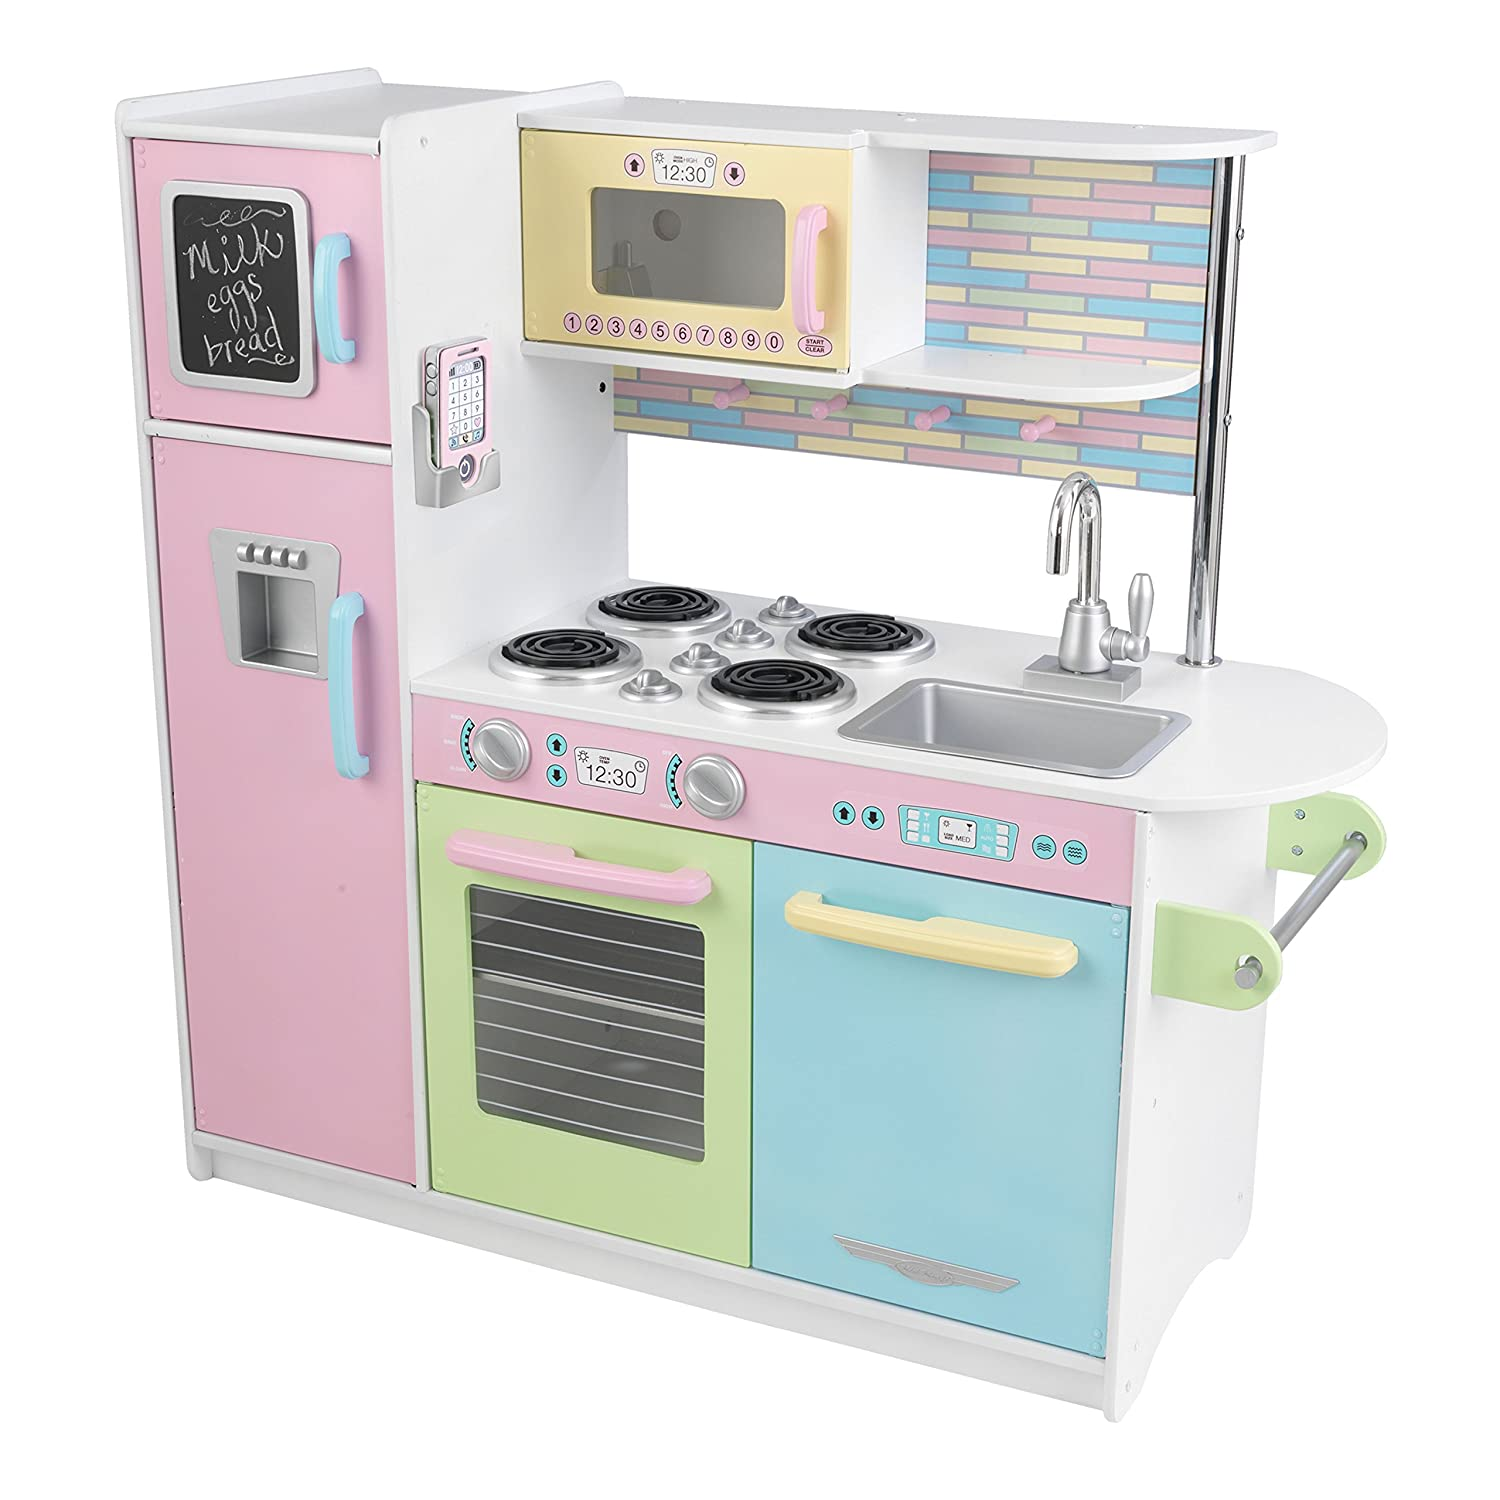 Top 20 Best Toy Kitchens for Kids 2017-2018 on Flipboard